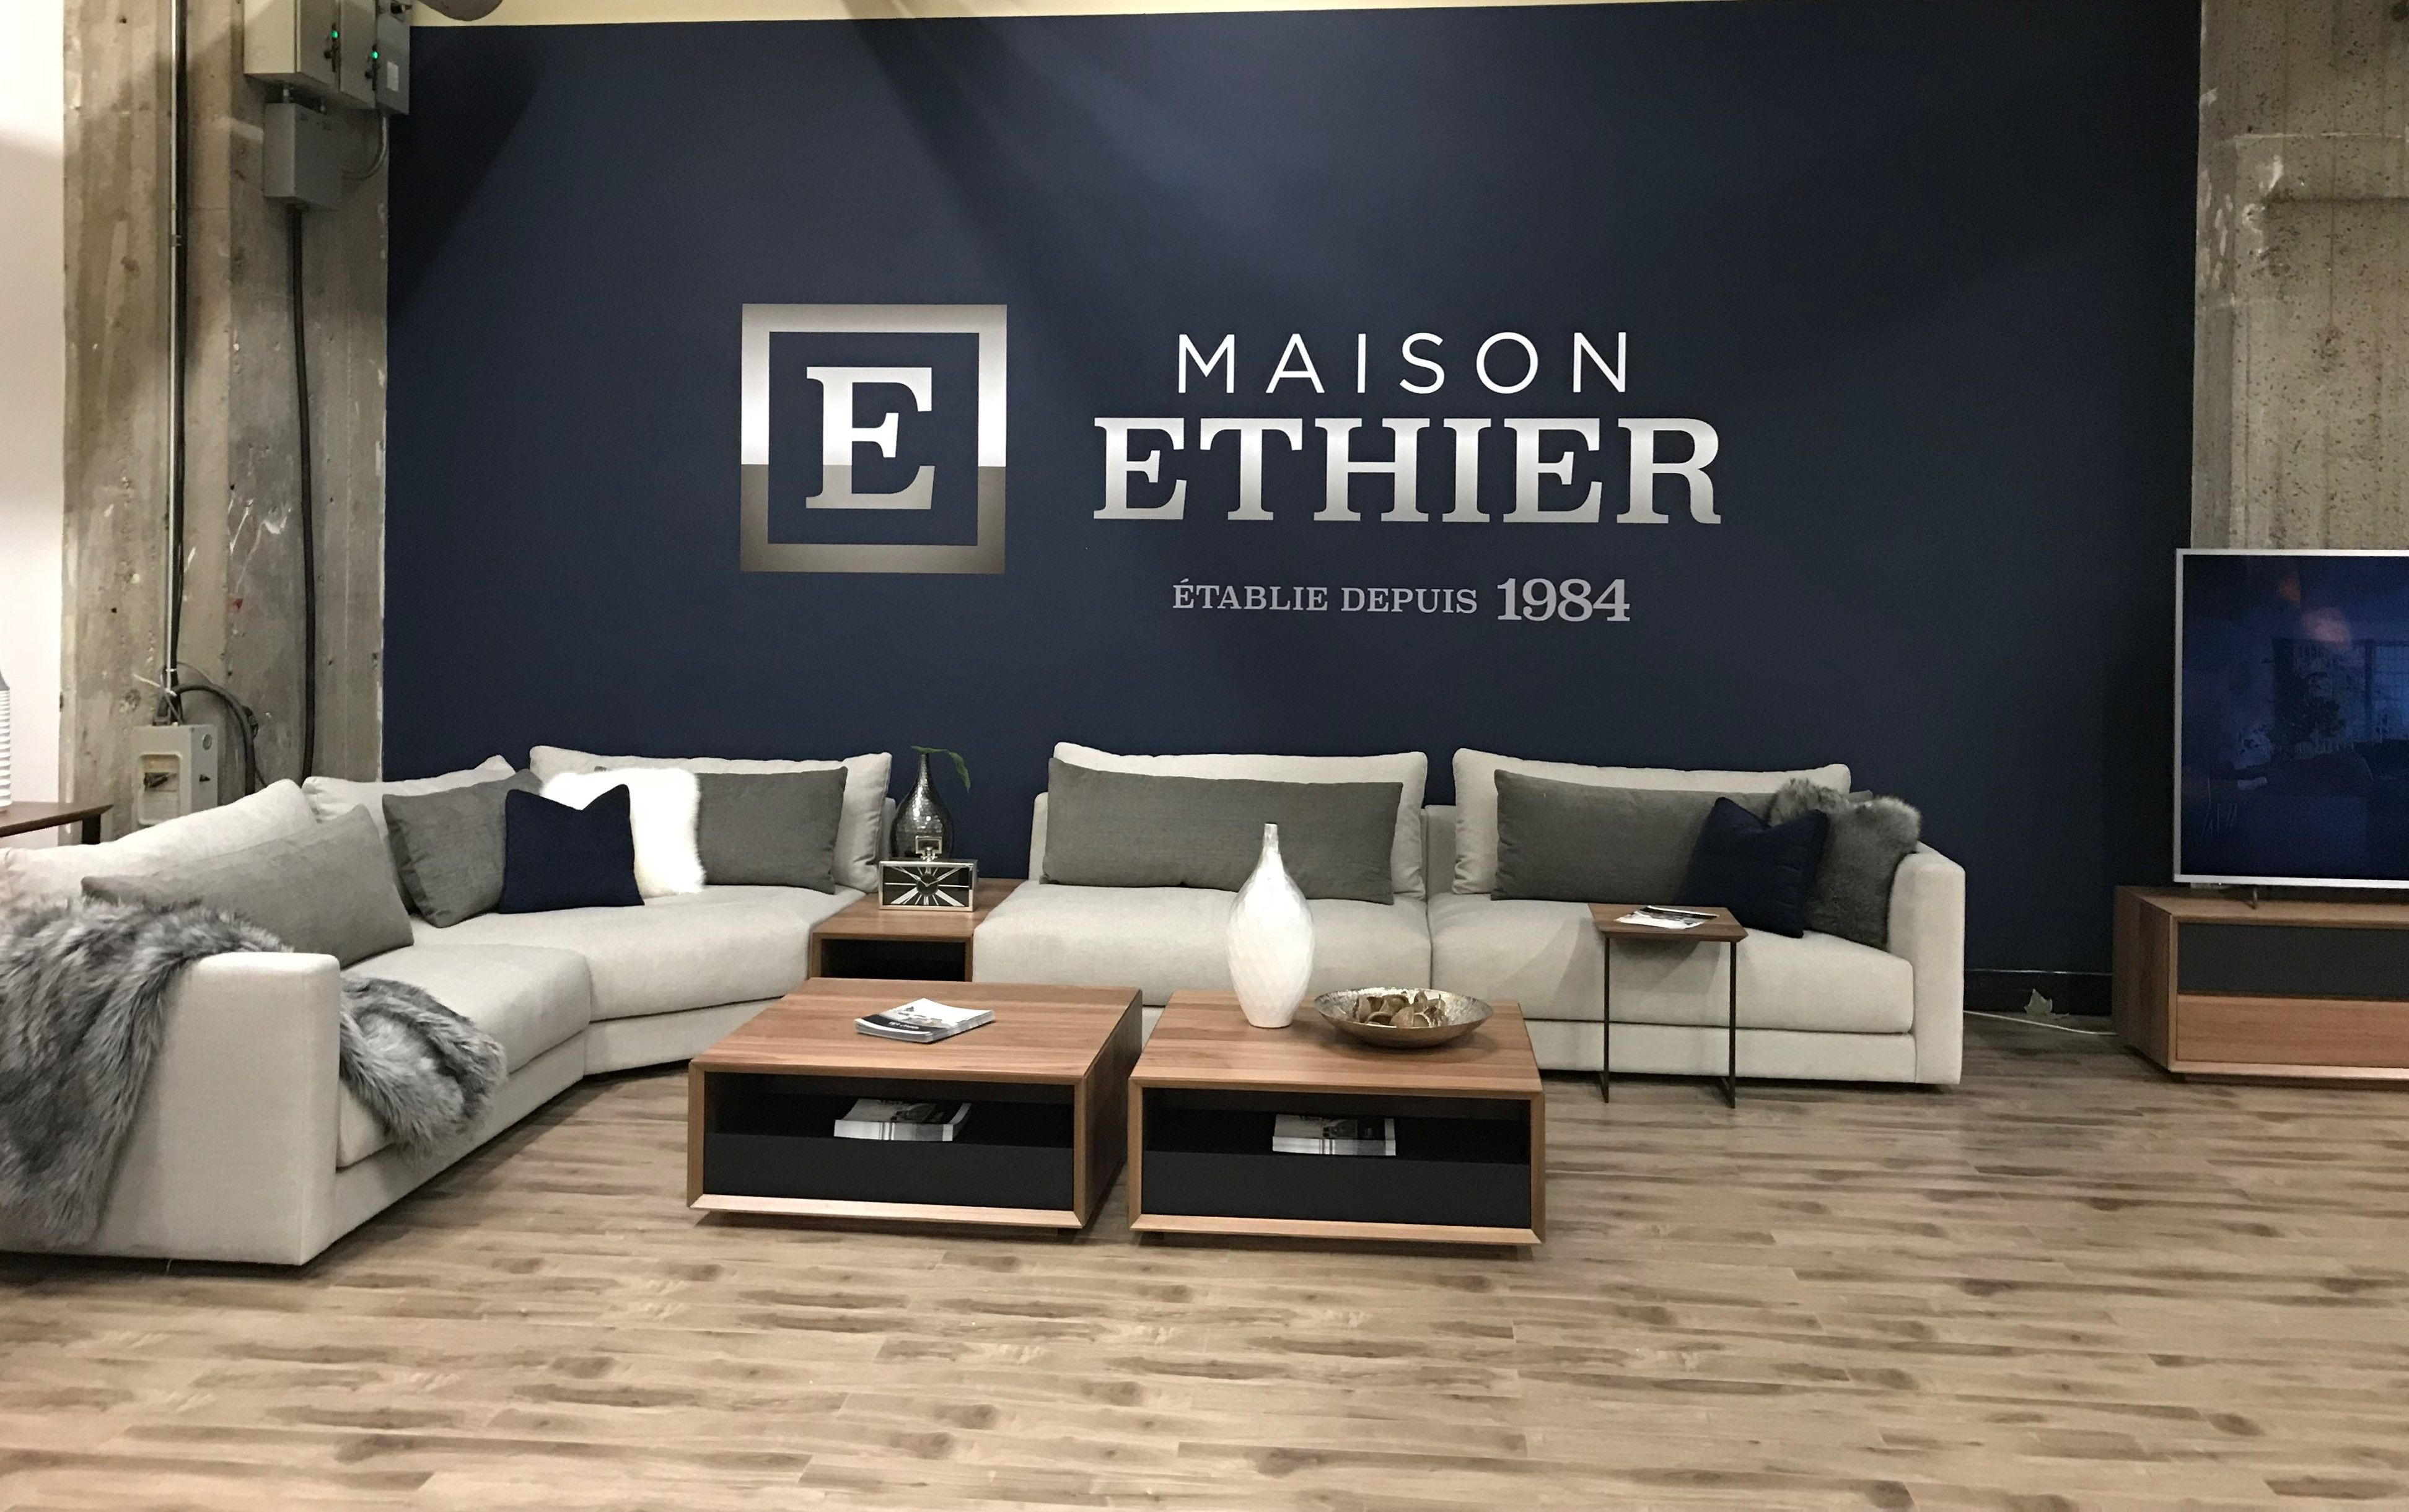 Meubles De Salon Bugatti Maison Ethier Salon Huppé Salon National De L Habitation 2018